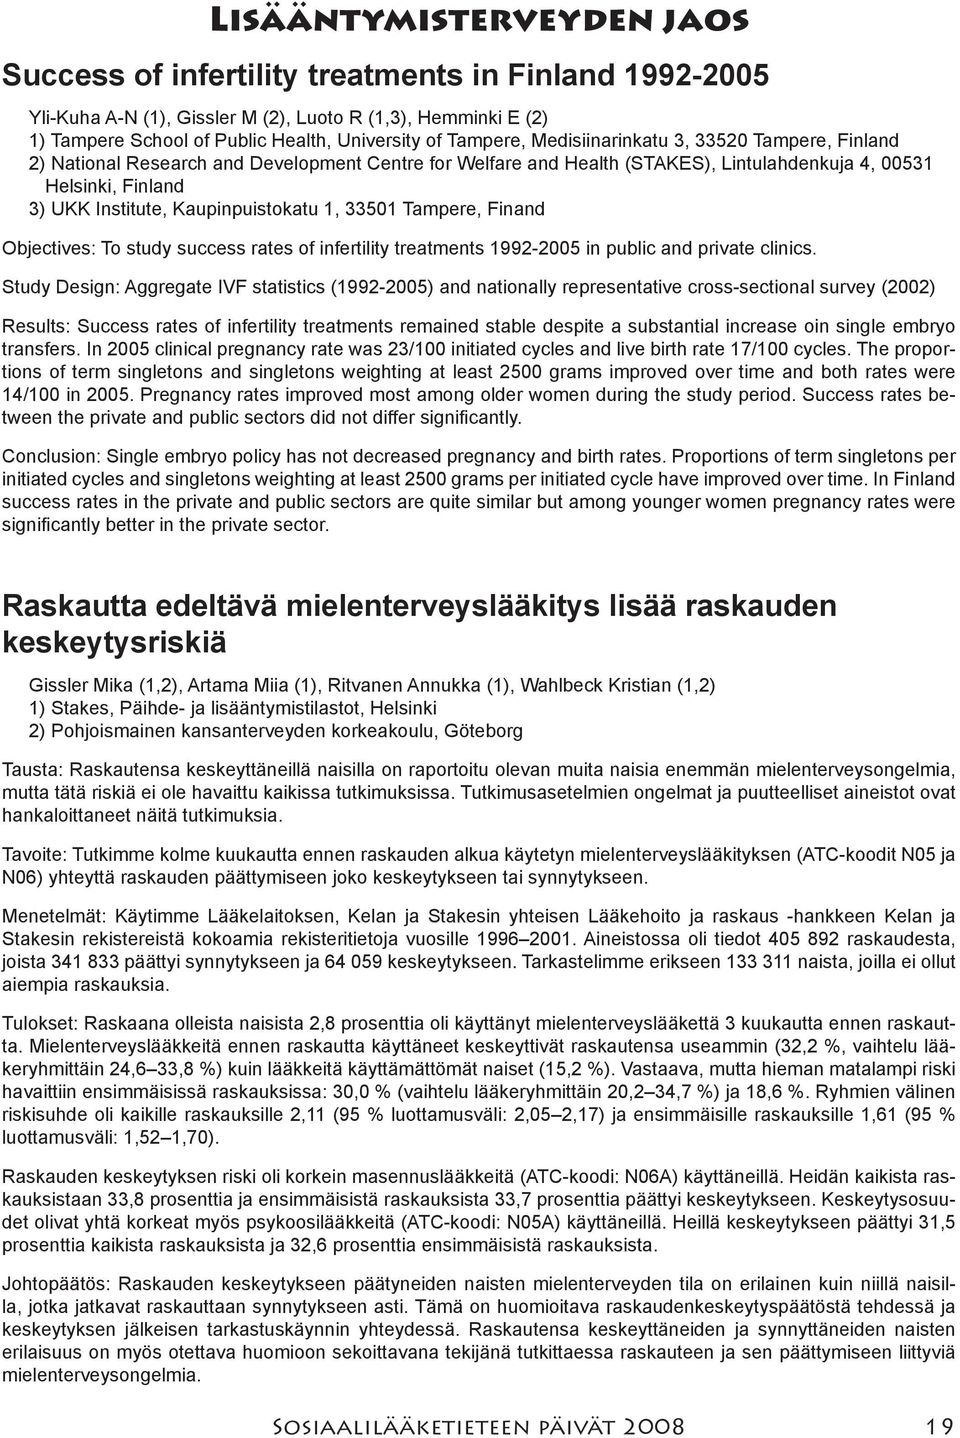 Kaupinpuistokatu 1, 33501 Tampere, Finand Objectives: To study success rates of infertility treatments 1992-2005 in public and private clinics.